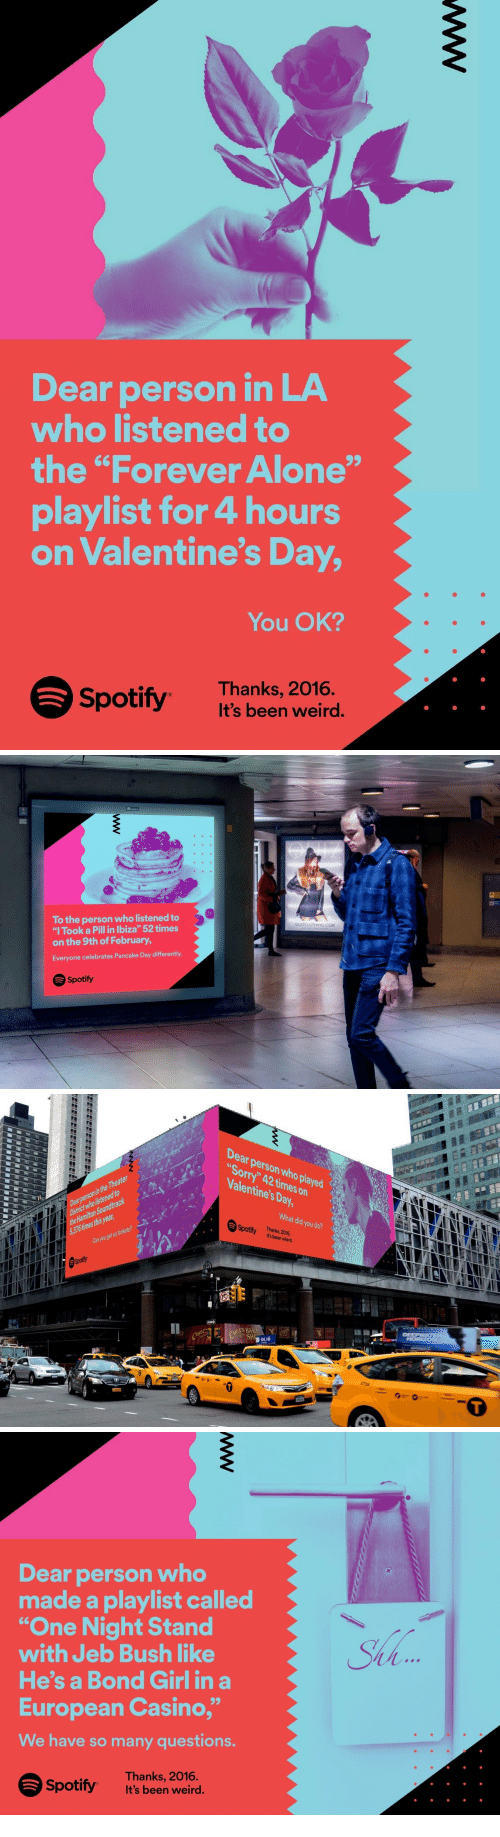 """Being Alone, Jeb Bush, and Sorry: Dear person in LA  who listened to  the """"Forever Alone""""  playlist for 4 hours  on Valentine's Day,  You OK?  Spotify Thanks, 2016  ts been weird.   To the person who listened to  """"l Took a Pill in lbiza"""" 52 times  on the 9th of February  Everyone celebrates Pancake Day differently  QUIZCLOTHING.COM  Spotify   Dear person who played  Sorry"""" 42 times on  Valentine's Day  District who listenedto  the Hamiton Soundltrack  5376 times this year  Learperson in the Theater2  What did you do?  Thanks,2016  It's been wierd.  02  Cn you get us tickets?   Dear person who  made a playlist called  """"One Night Stand  with Jeb Bush like  He's a Bond Girl in a  European Casino,""""  We have so many questions.  Sha  Spotify  Thanks, 2016.  It's been weird."""